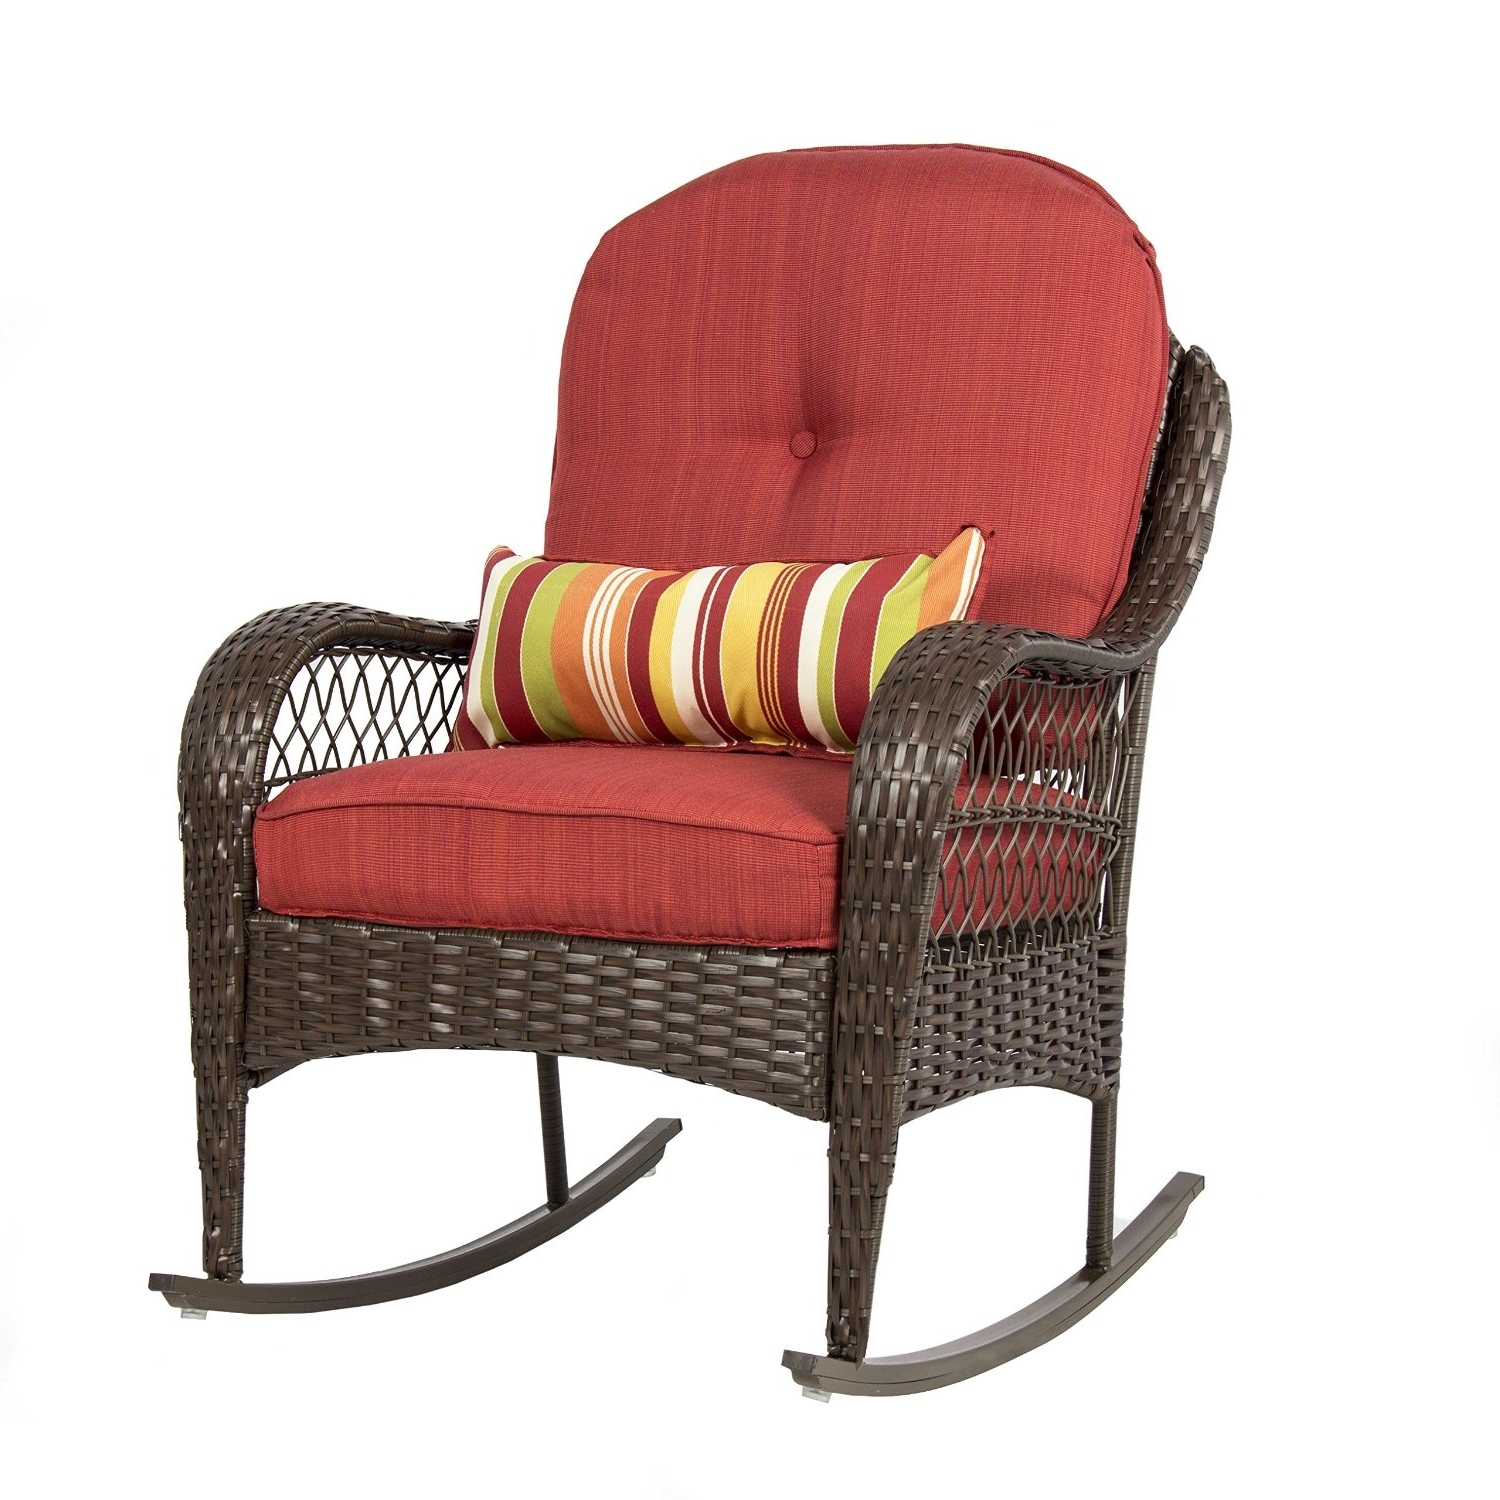 Best Choice Products Wicker Rocking Chair Within Famous Outdoor Wicker Rocking Chairs With Cushions (View 1 of 20)